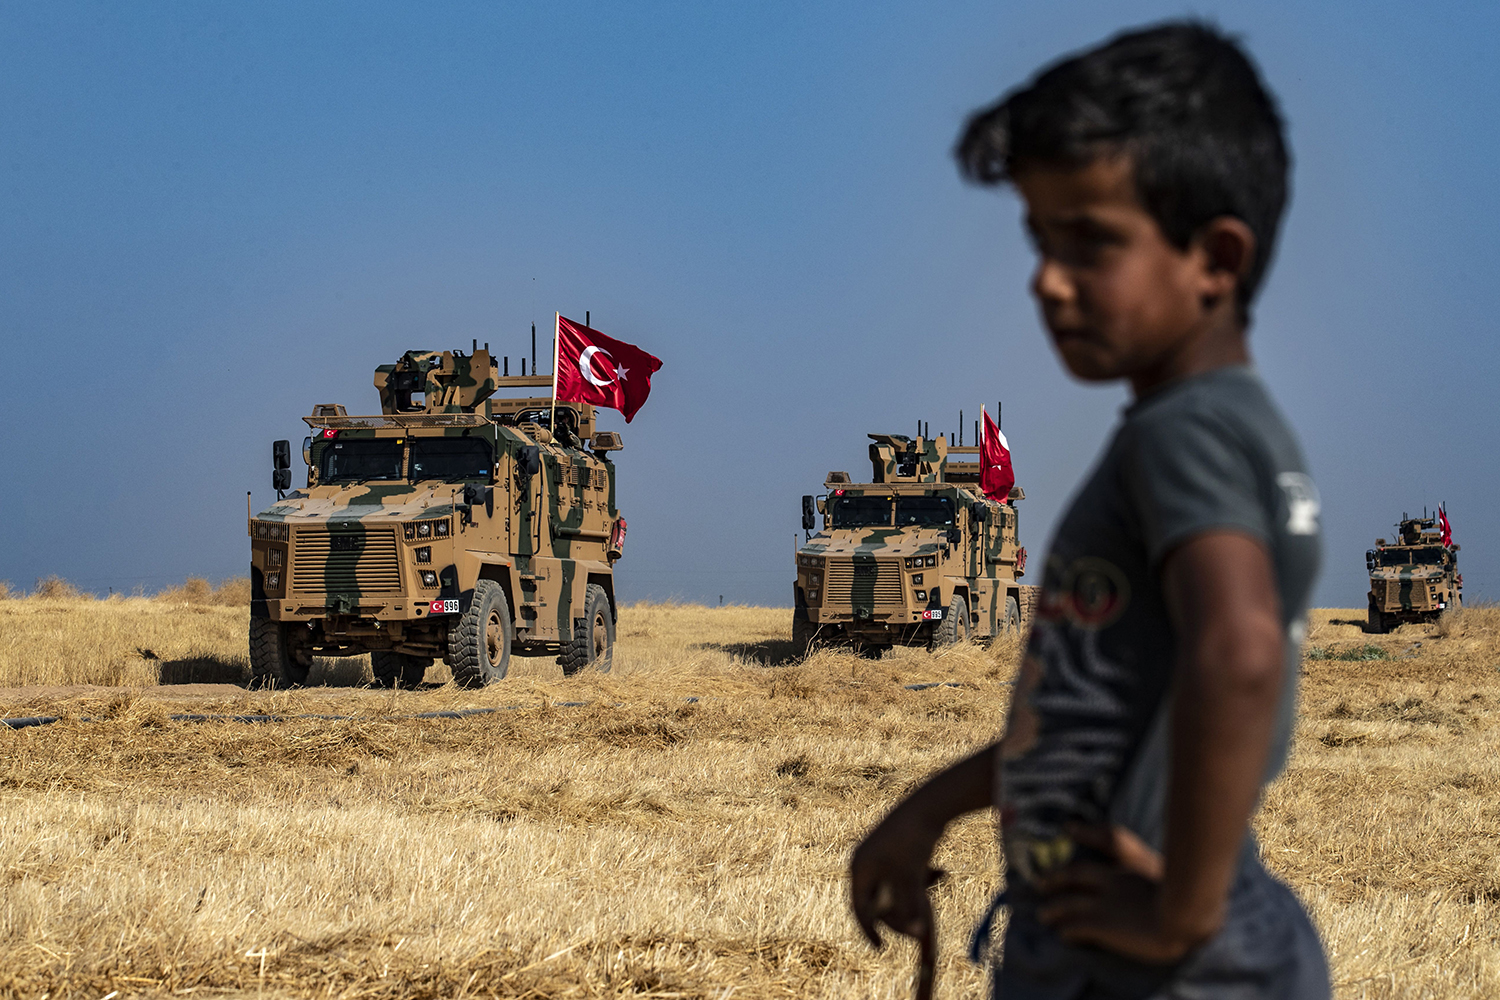 A Syrian boy watches as Turkish military vehicles, part of a U.S. military convoy, take part in joint patrol in the Syrian village of al-Hashisha along the border with Turkey on Oct. 4. DELIL SOULEIMAN/AFP via Getty Images